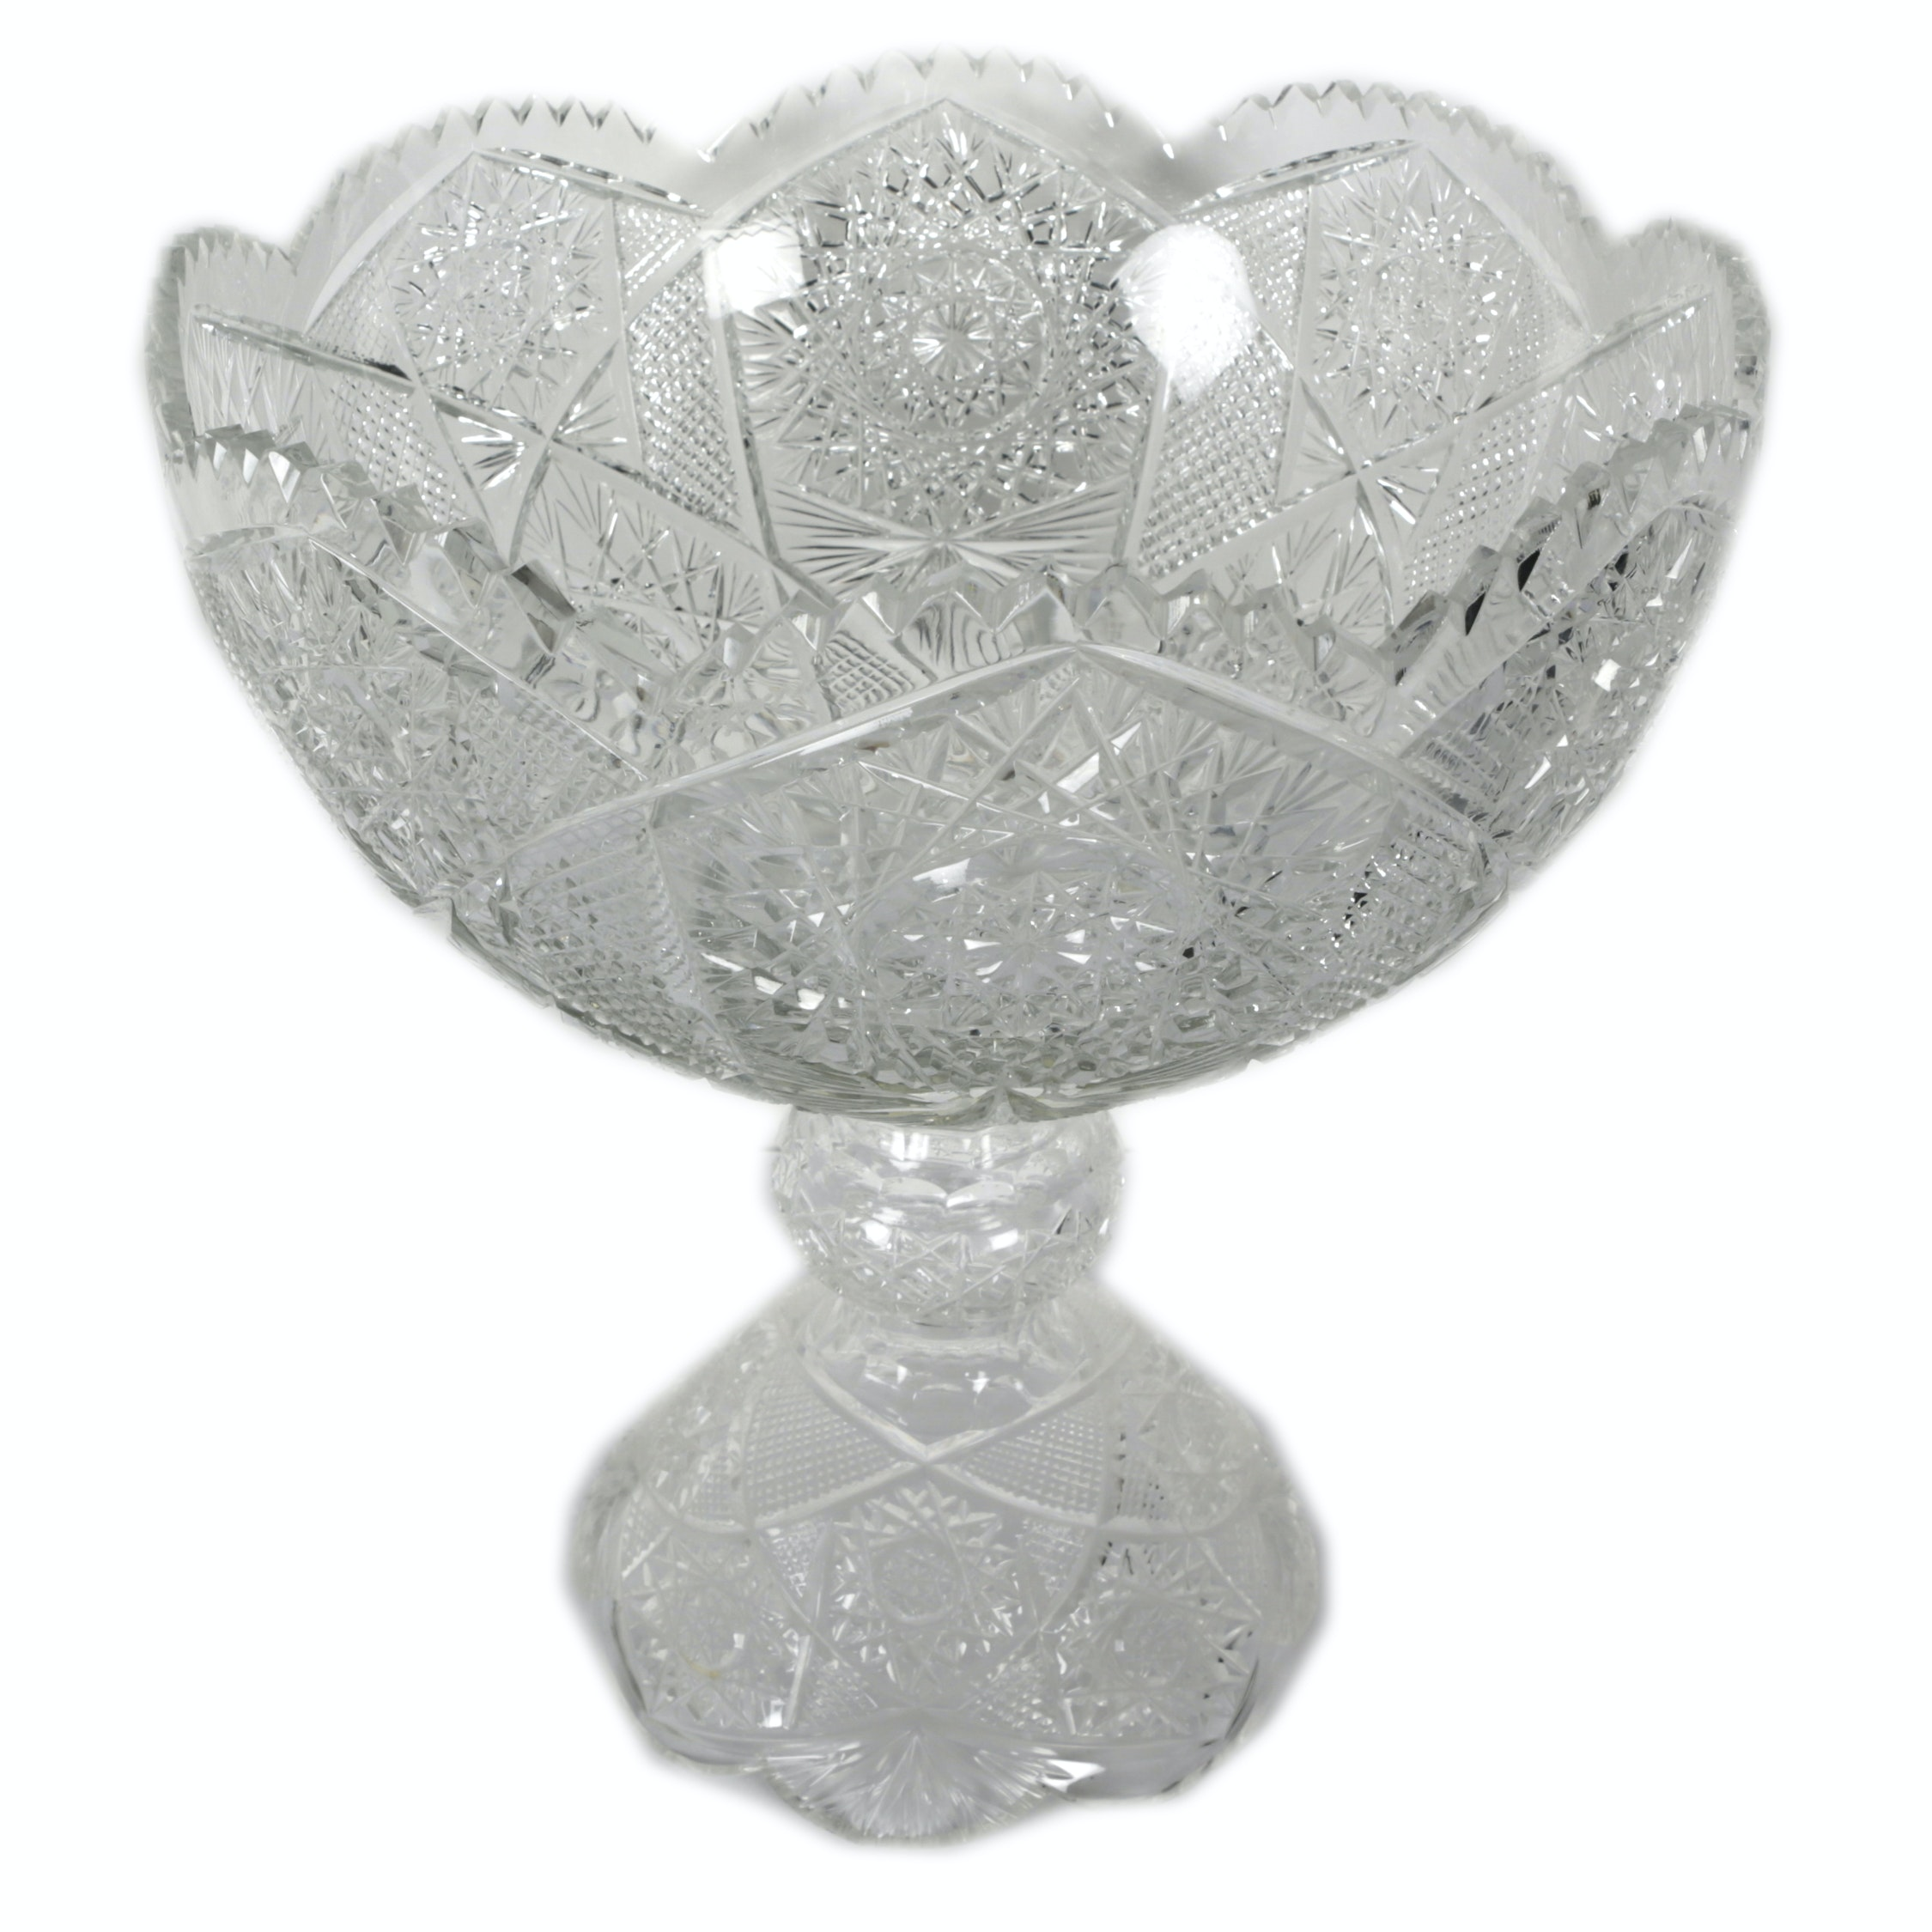 Vintage American Brilliant Cut Glass Punch Bowl